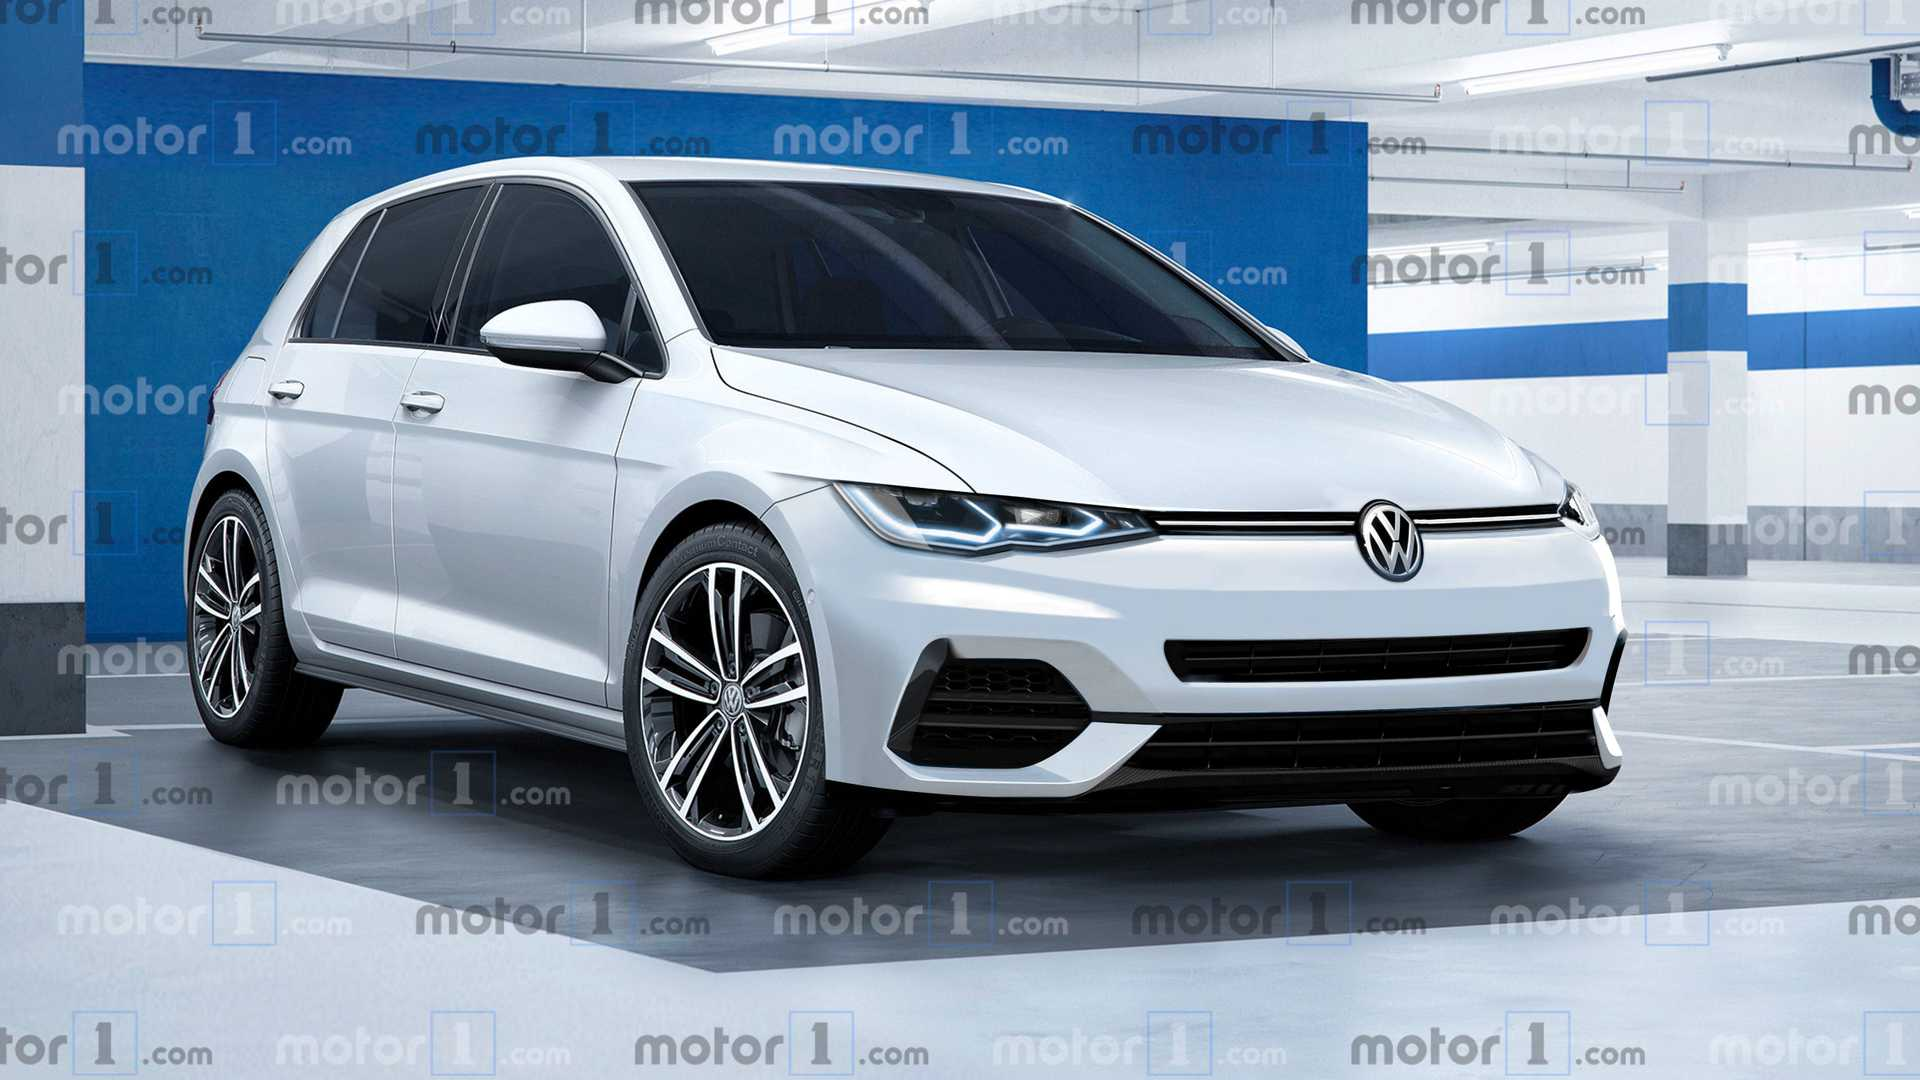 63 The Best Volkswagen Golf Hybrid 2020 Ratings